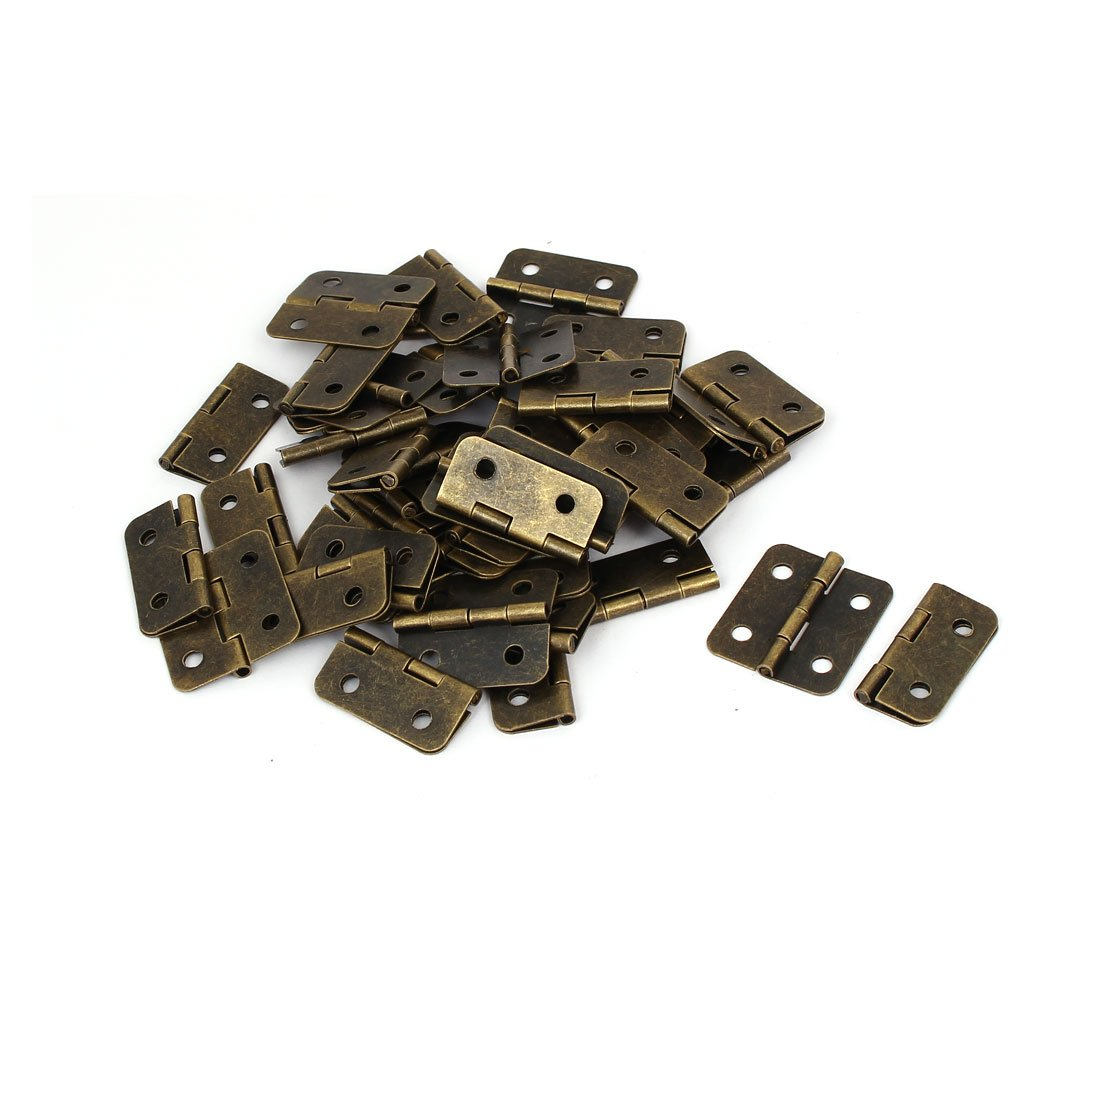 uxcell Furniture Drawer Door 1.2 Inch Length Metal Foldable Hinges Bronze Tone 50PCS by uxcell